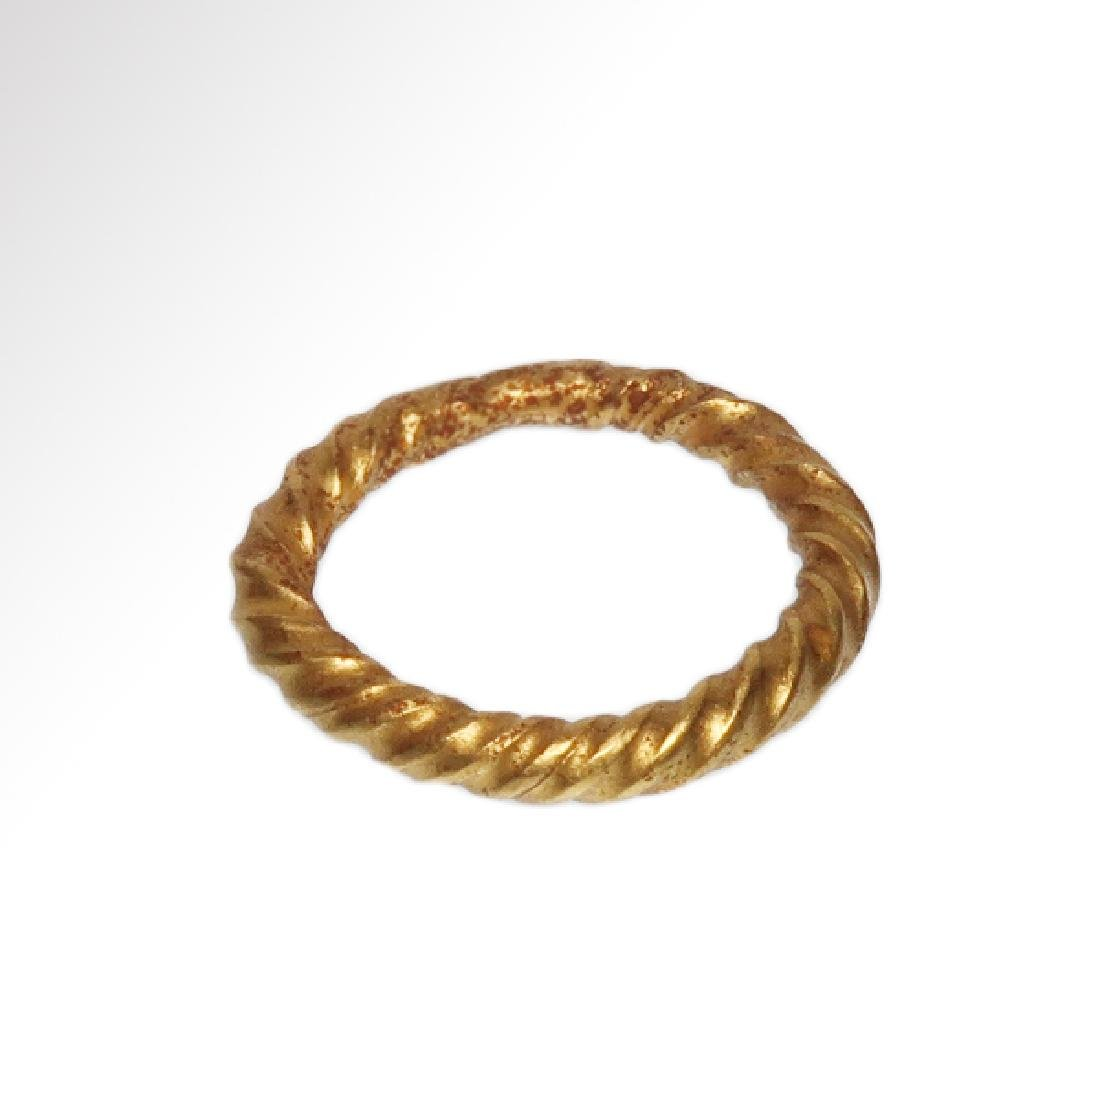 Viking Solid Gold Ring, c. 10th Century A.D. - 5